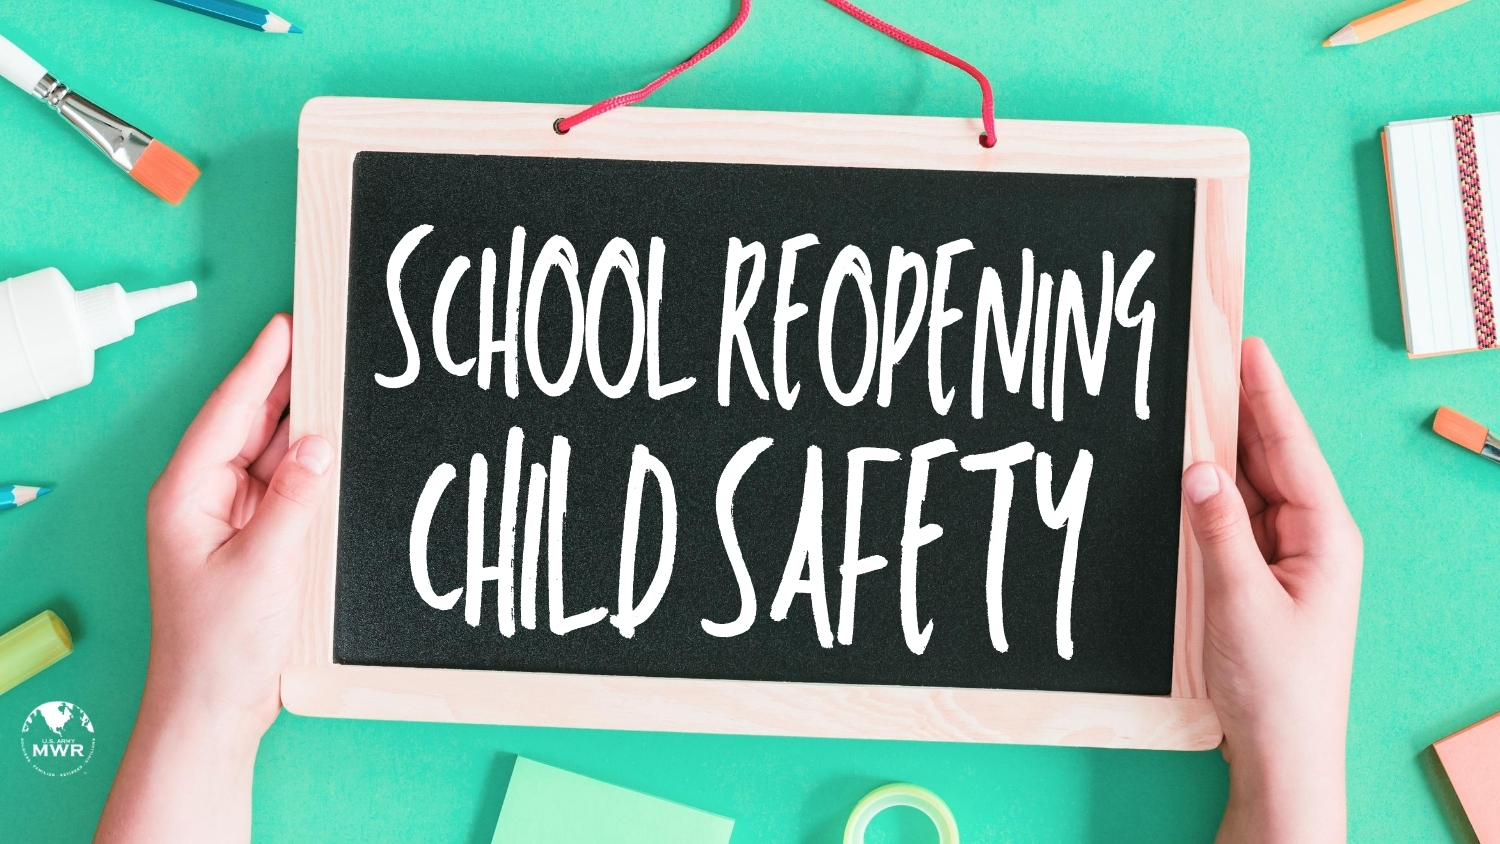 School Reopening Child Safety Ft Drum Us Army Mwr